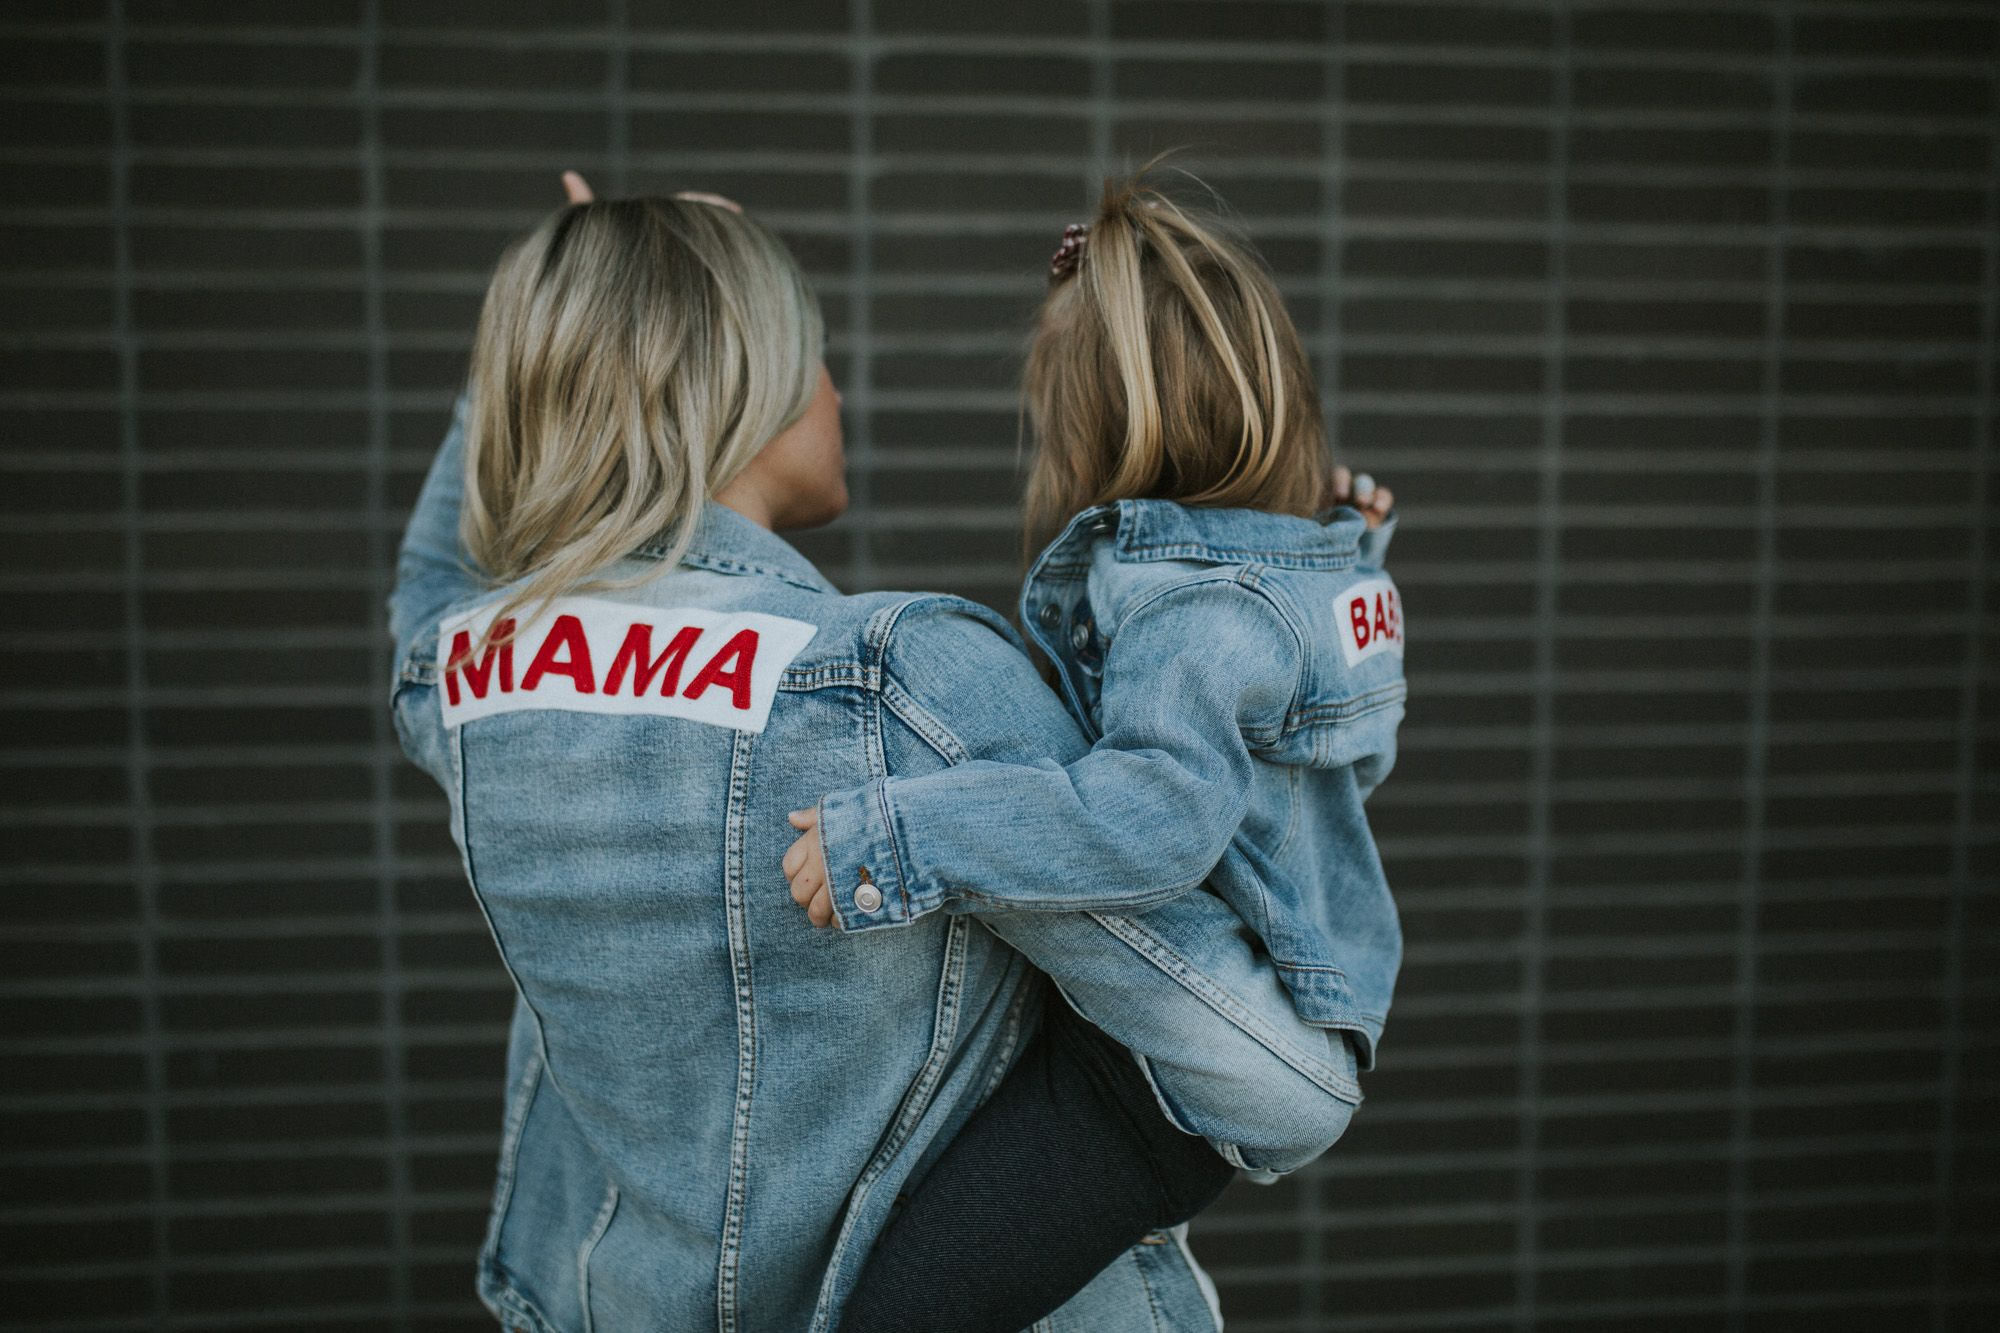 87ff8d5118809 Mama + Babe Denim Jackets - Living in Color | STYLE || Everyday ...